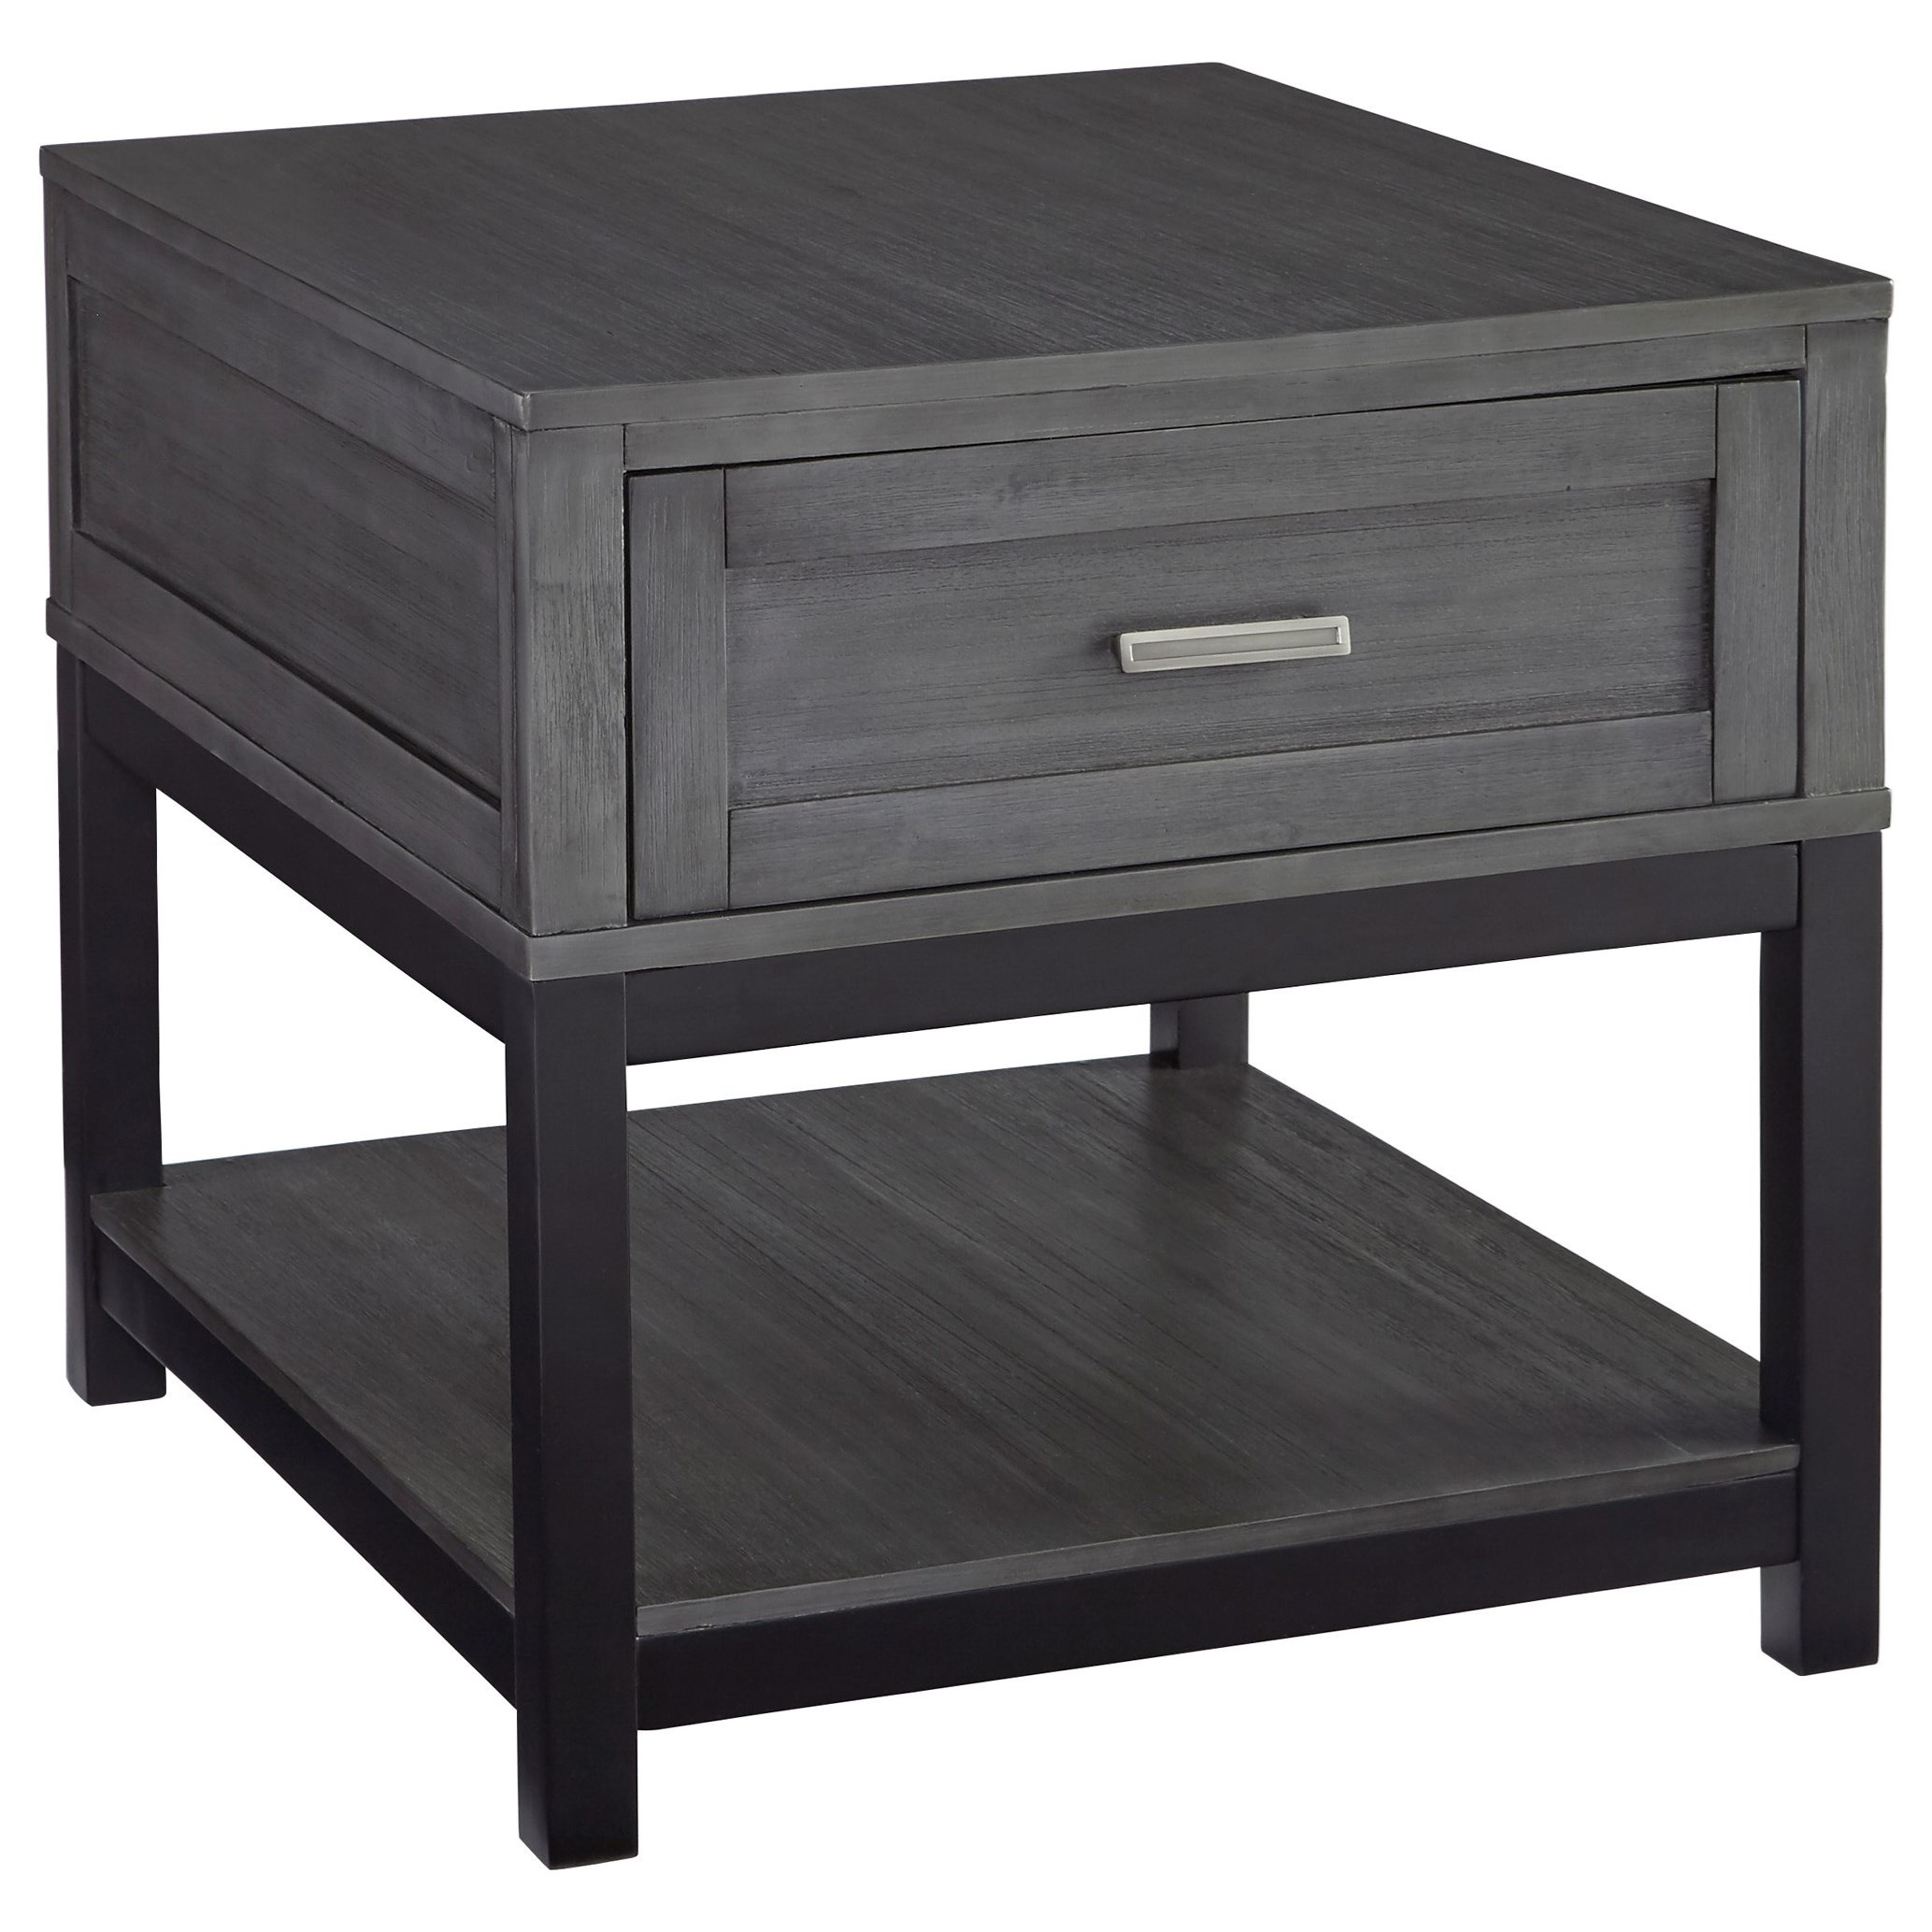 Caitbrook Rectangular End Table by Signature Design by Ashley at Standard Furniture